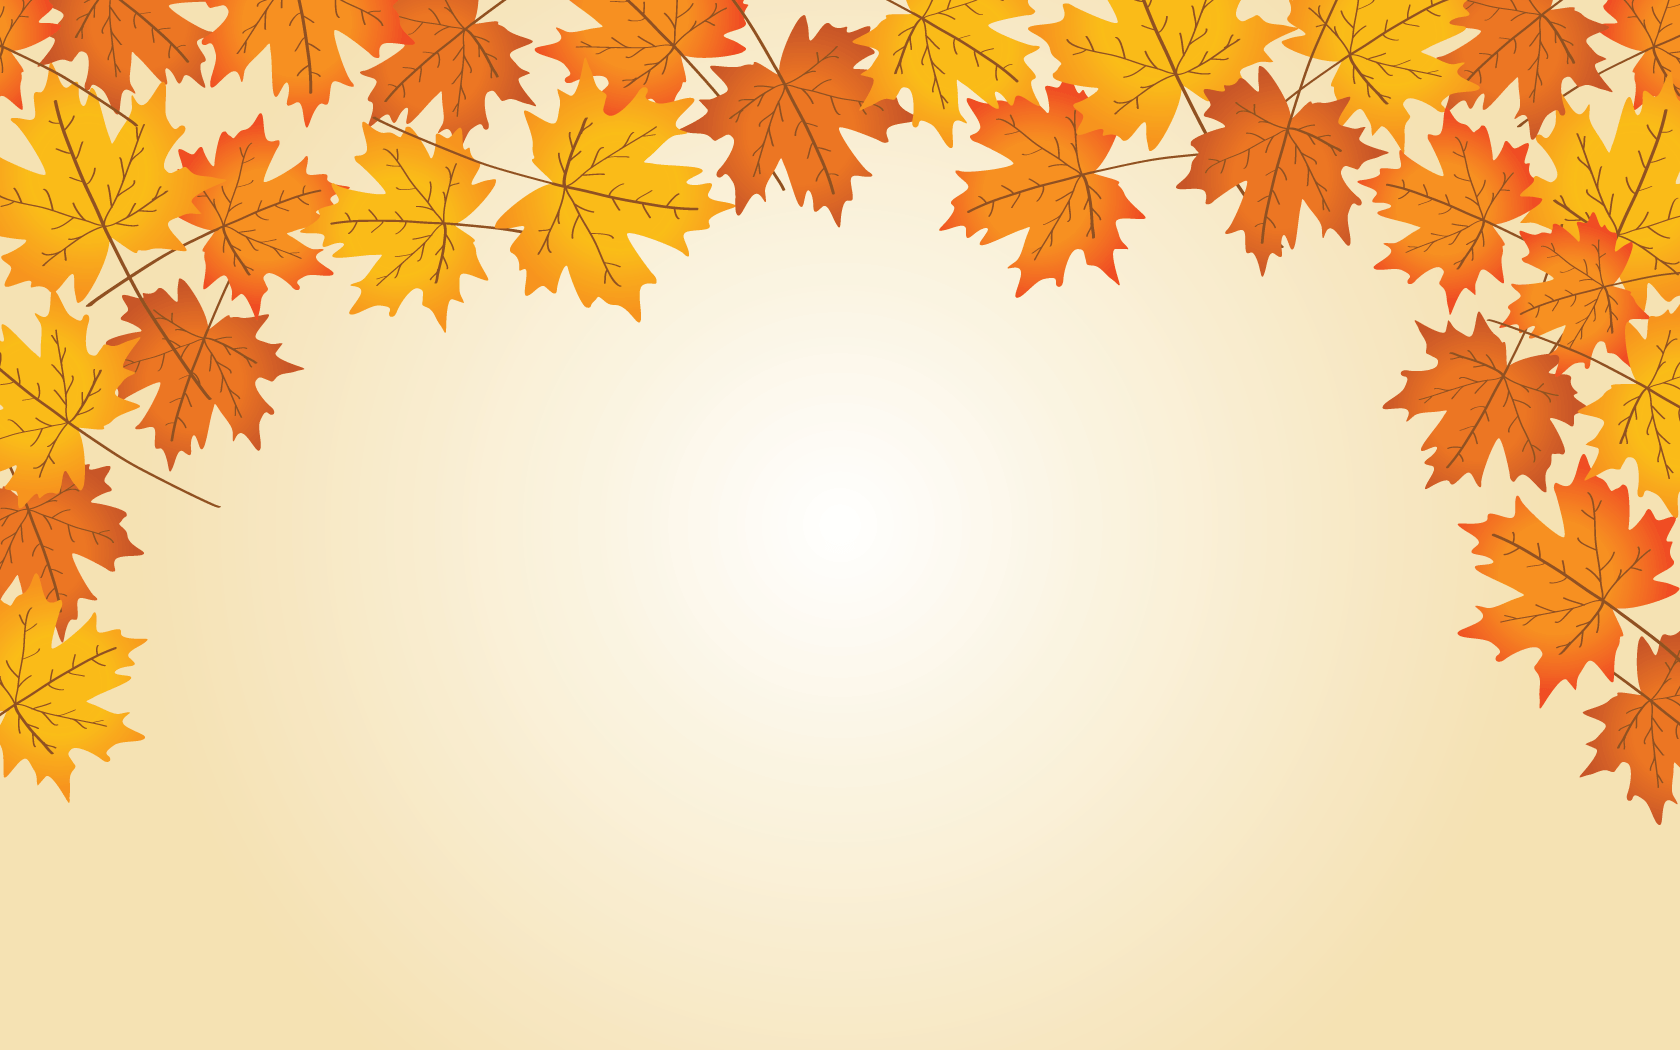 Autumn Ppt Background Free Autumn Frame Powerpoint Templates Slidebackground